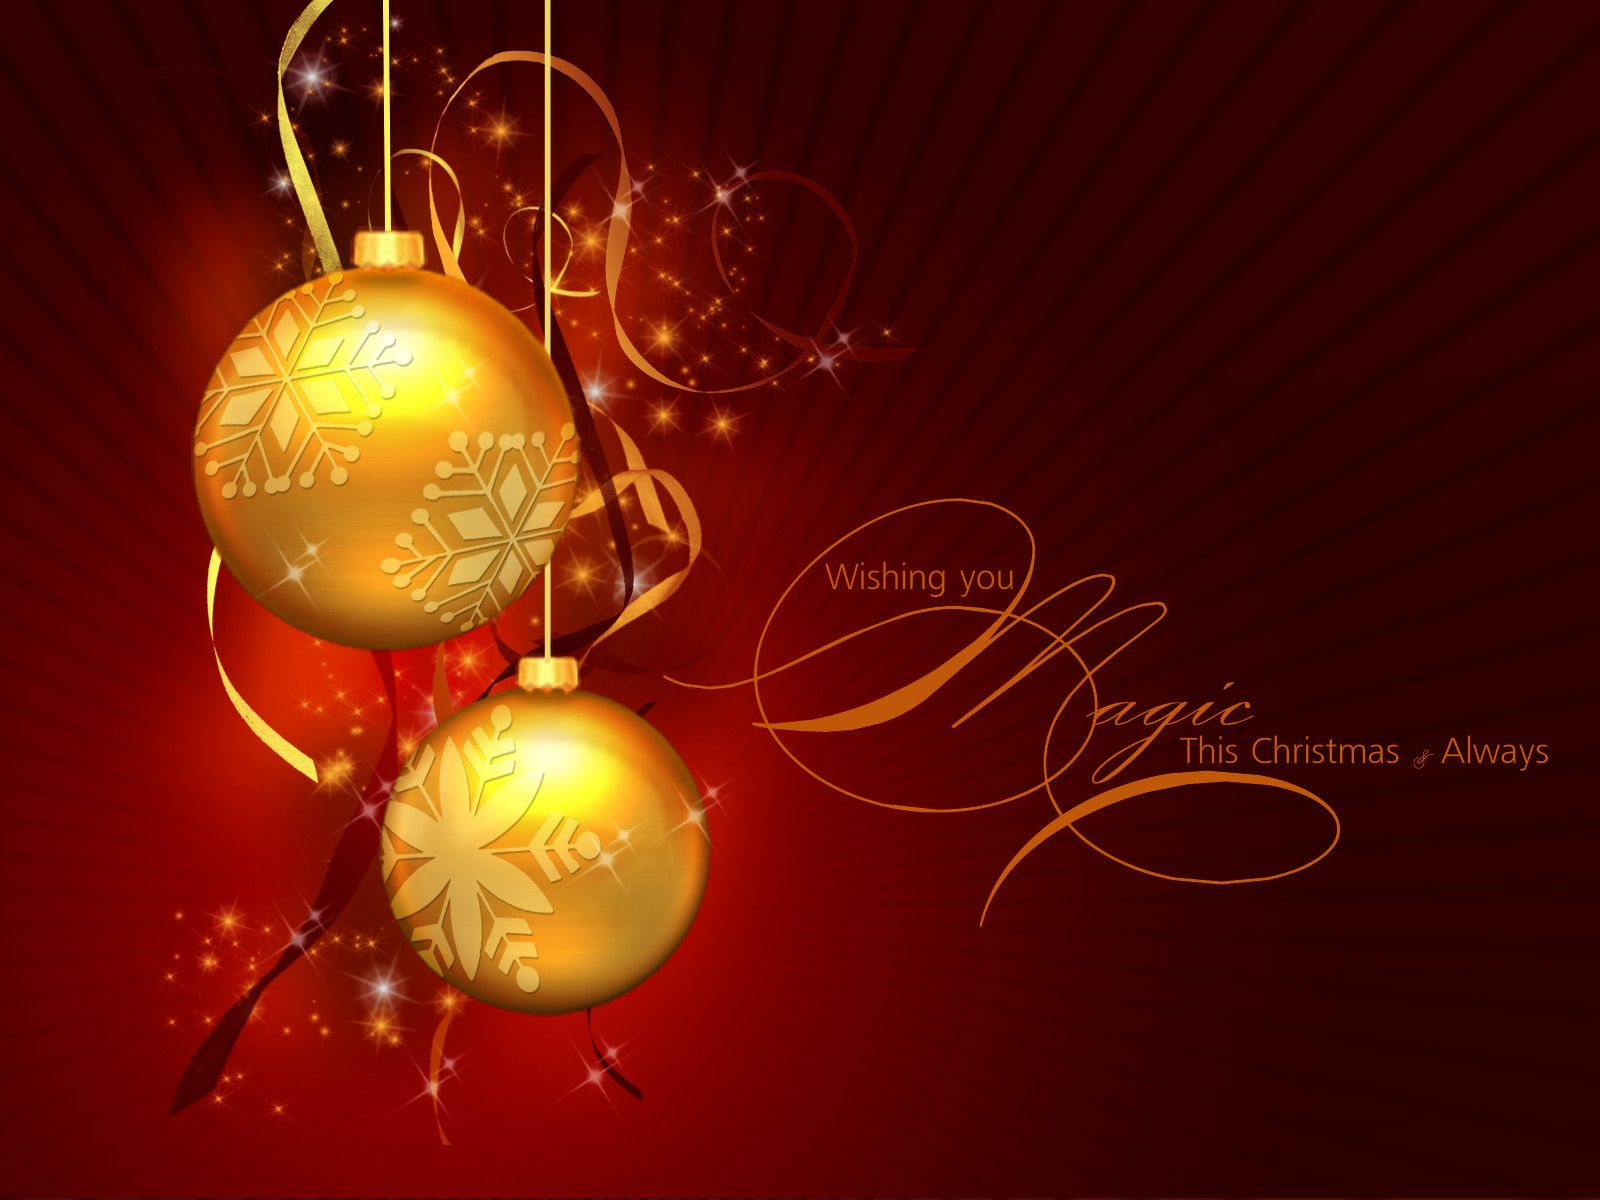 Free Christmas Wallpaper Backgrounds.Pin On Christmas Pic Favs